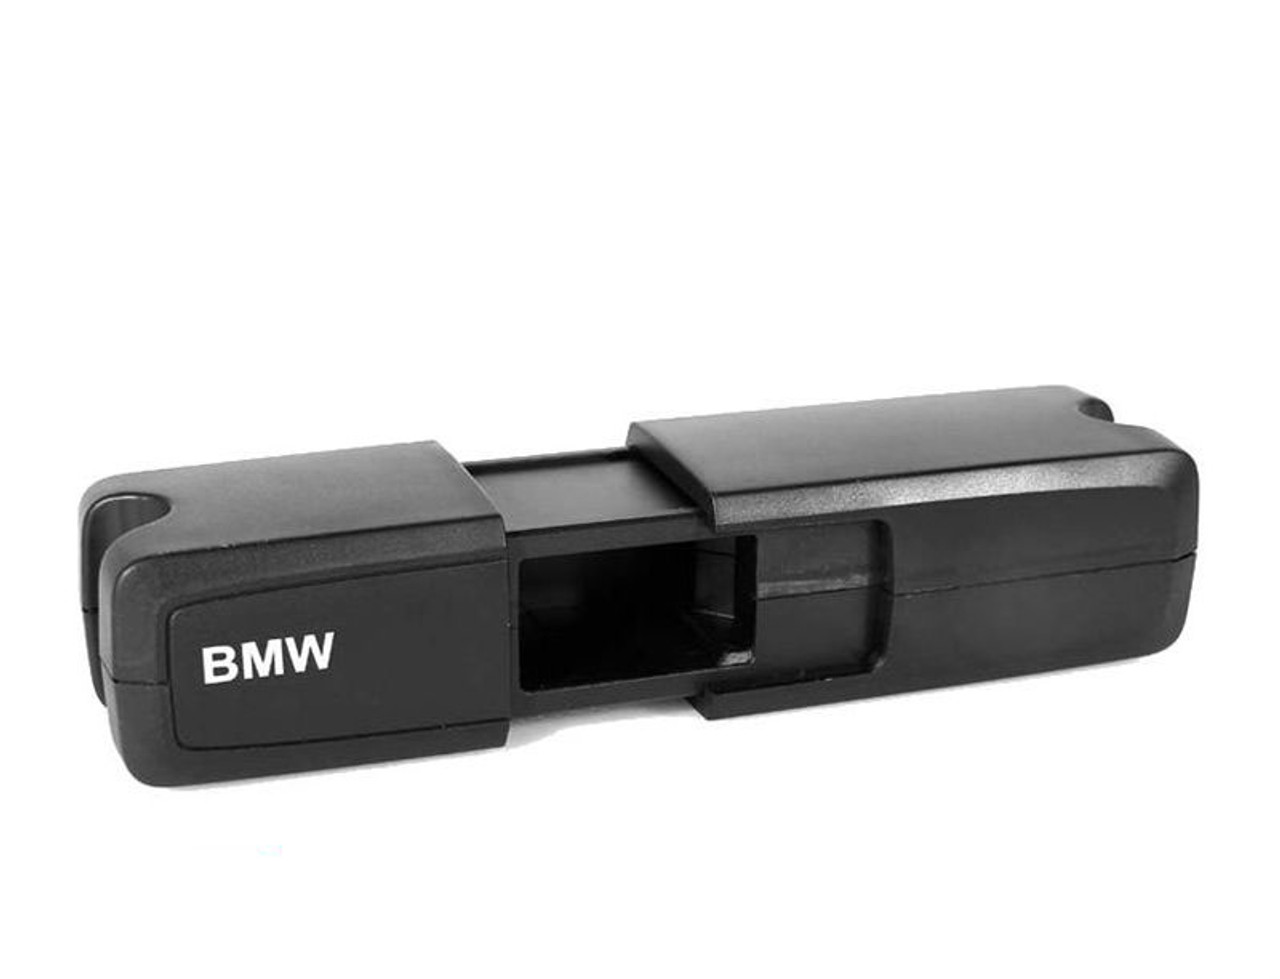 Genuine BMW Base Carrier for Seat Accessory Attachments 51952183852